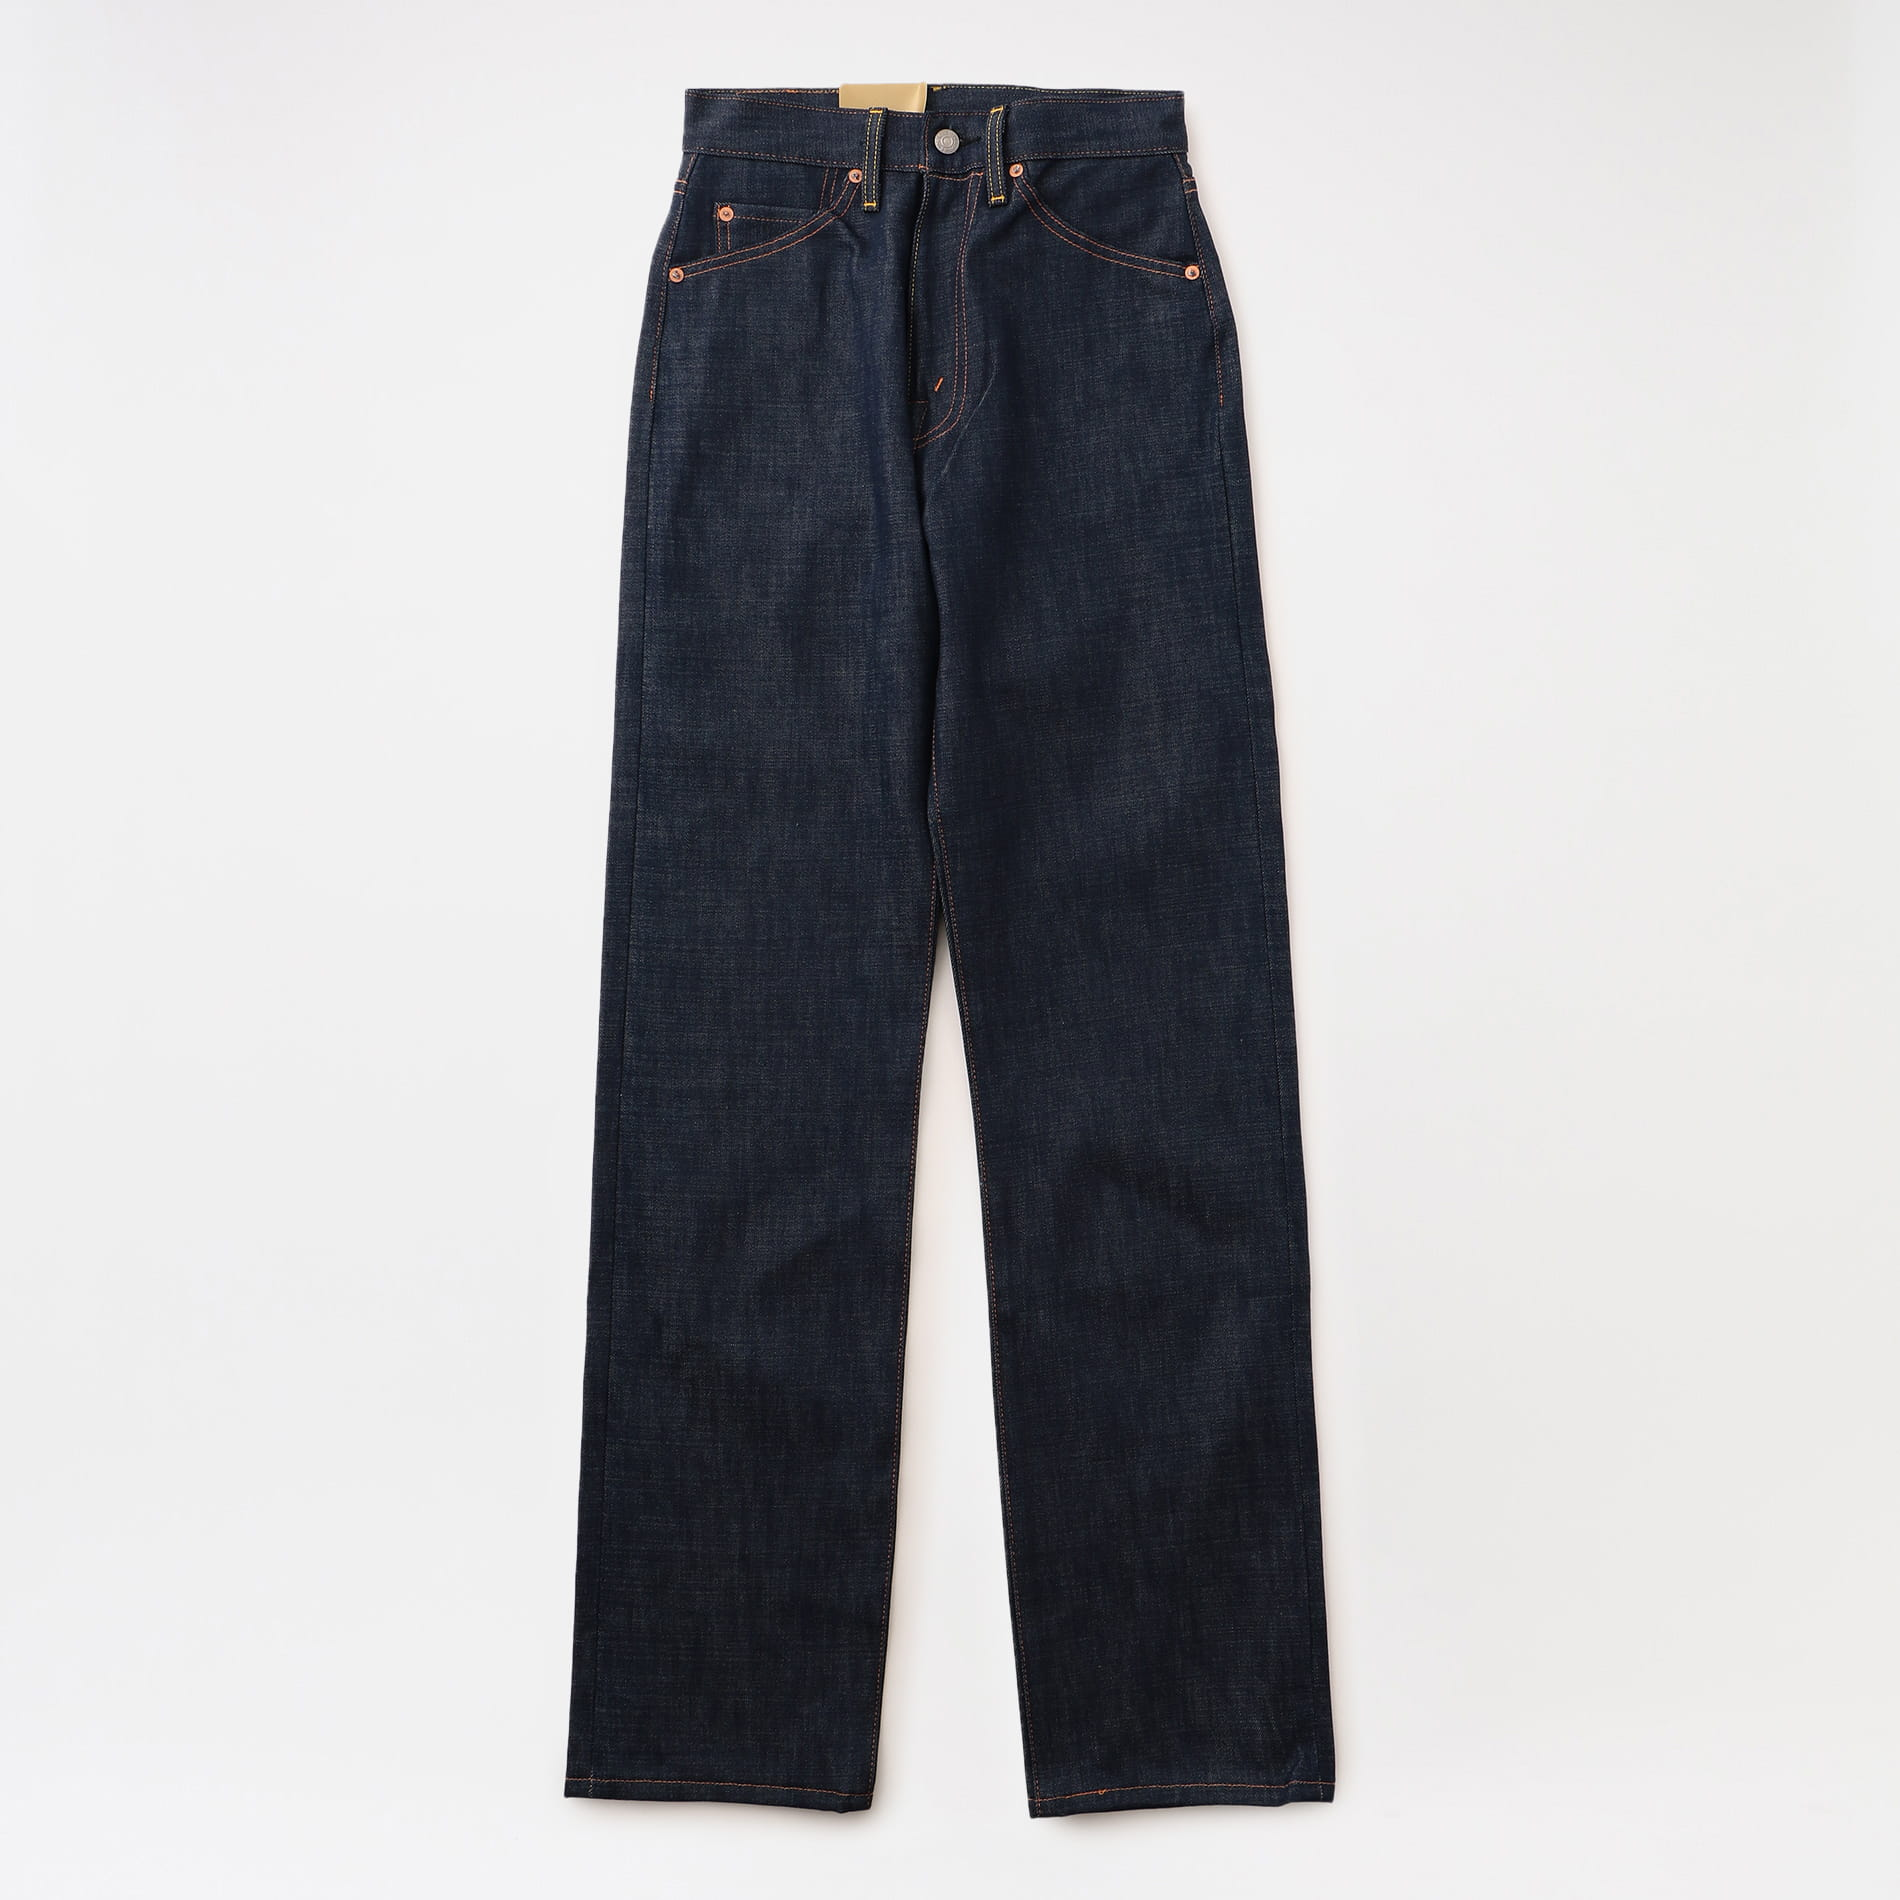 【LEVI'S VINTAGE CLOTHING】WOMEN 1950's 701 JEANS 50701-0008